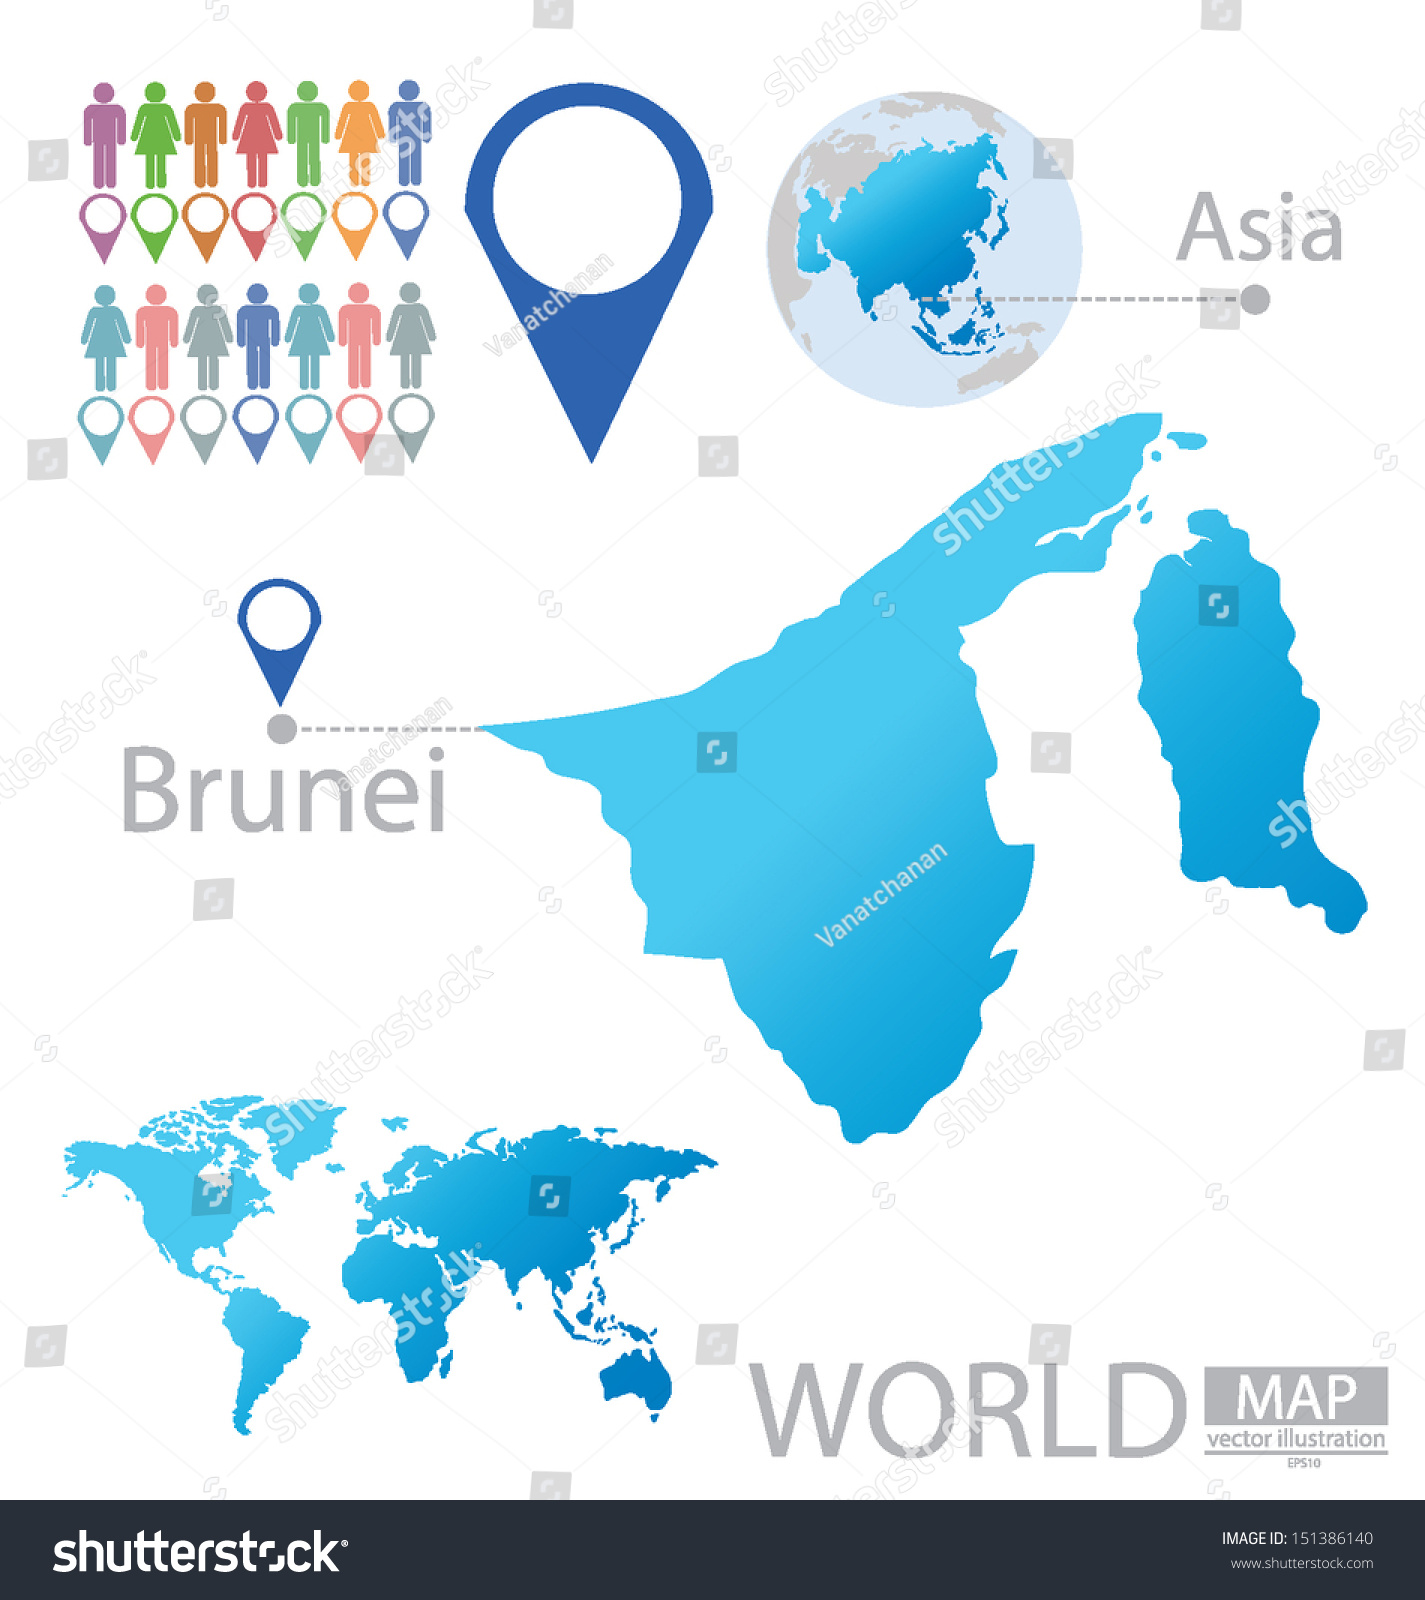 Brunei Asia World Map Vector Illustration Stock Vector Royalty Free